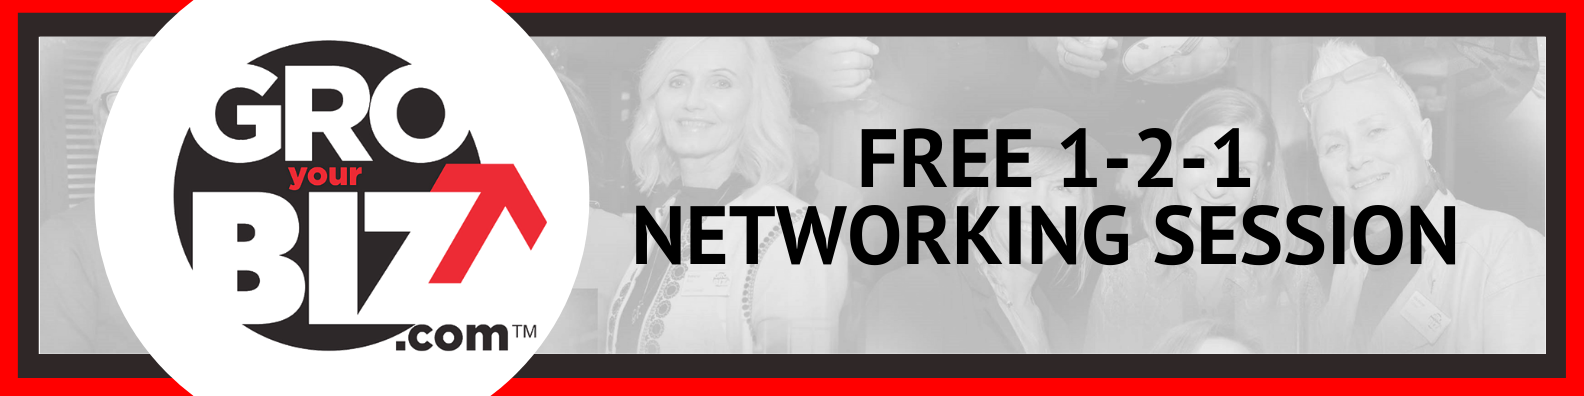 GroYourBiz 1-2-1 Networking Sessions